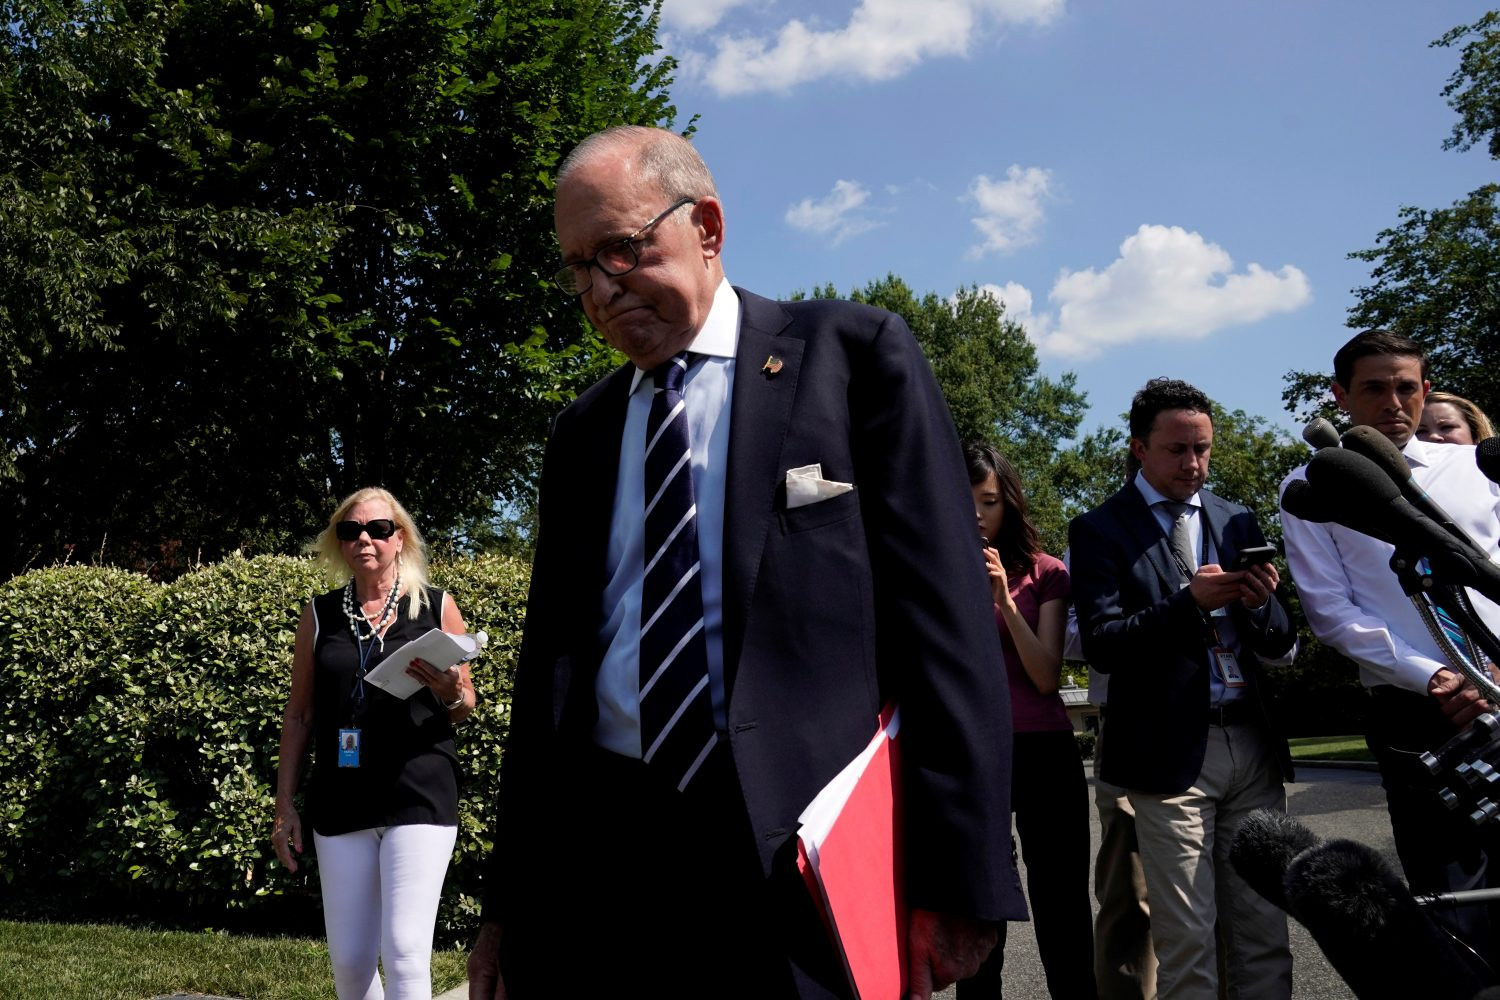 White House chief economic advisor Larry Kudlow leaves after speaking with reporters on the driveway outside the West Wing of the White House in Washington, U.S. July 26, 2019. REUTERS/Yuri Gripas